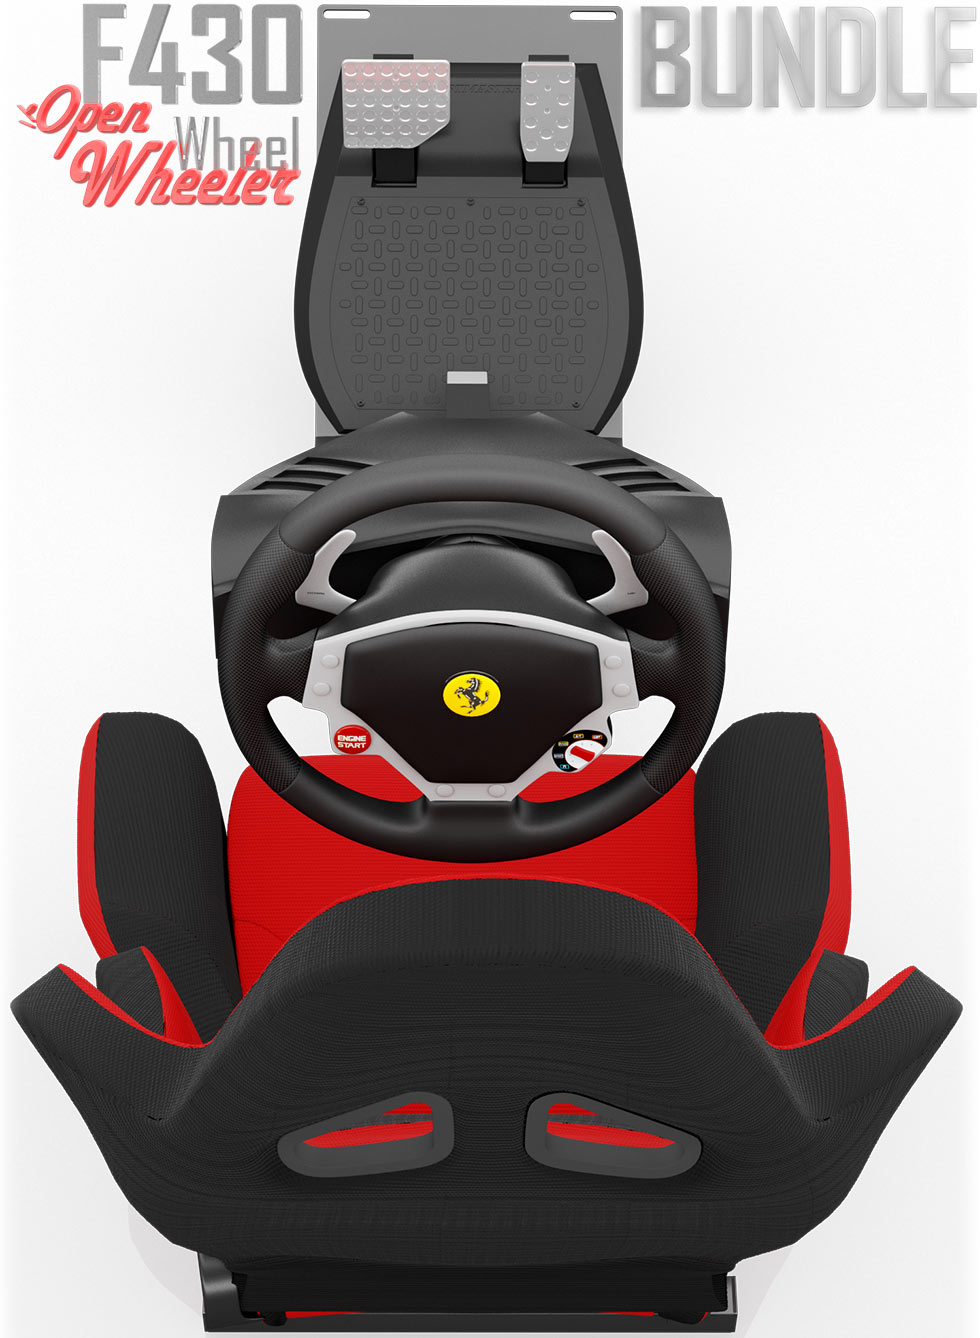 A review of the Thrustmaster Ferrari 430 steering wheel